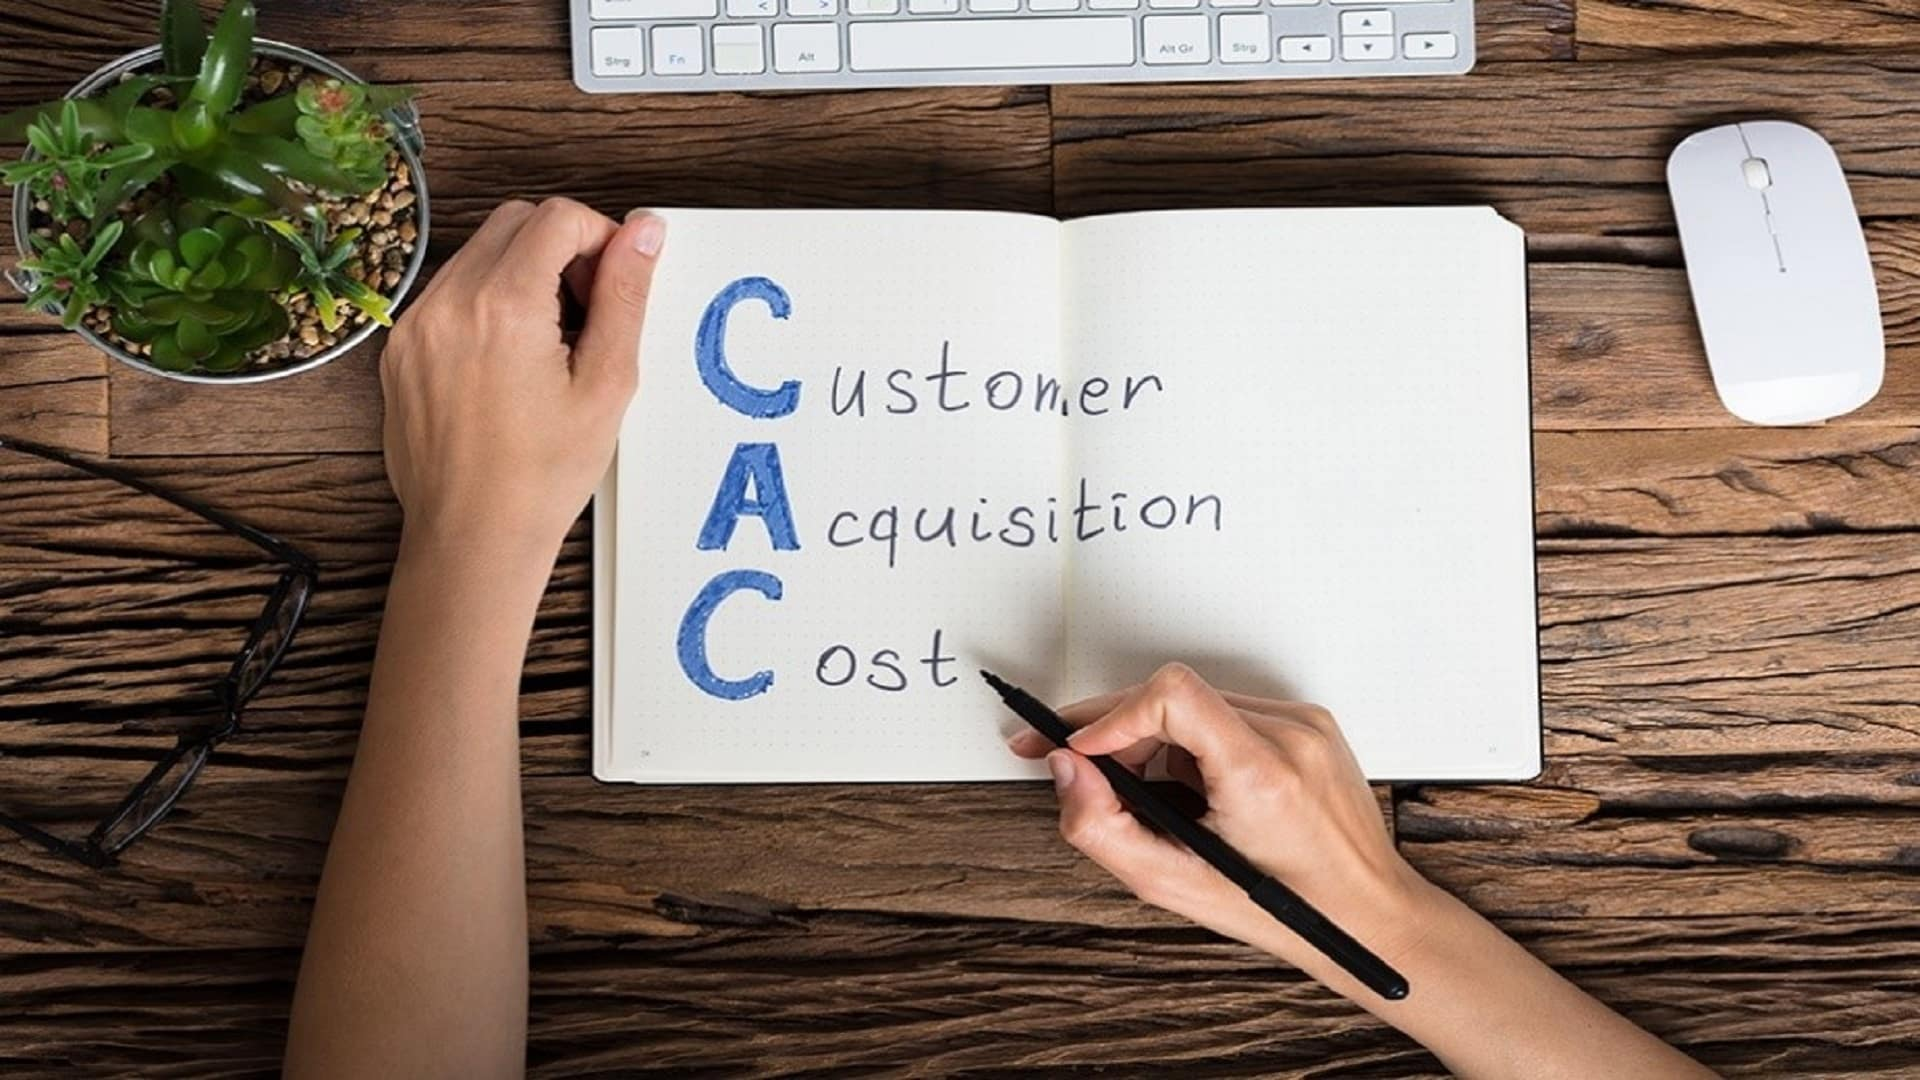 Key Performance Indicator of Customer Acquisition Cost